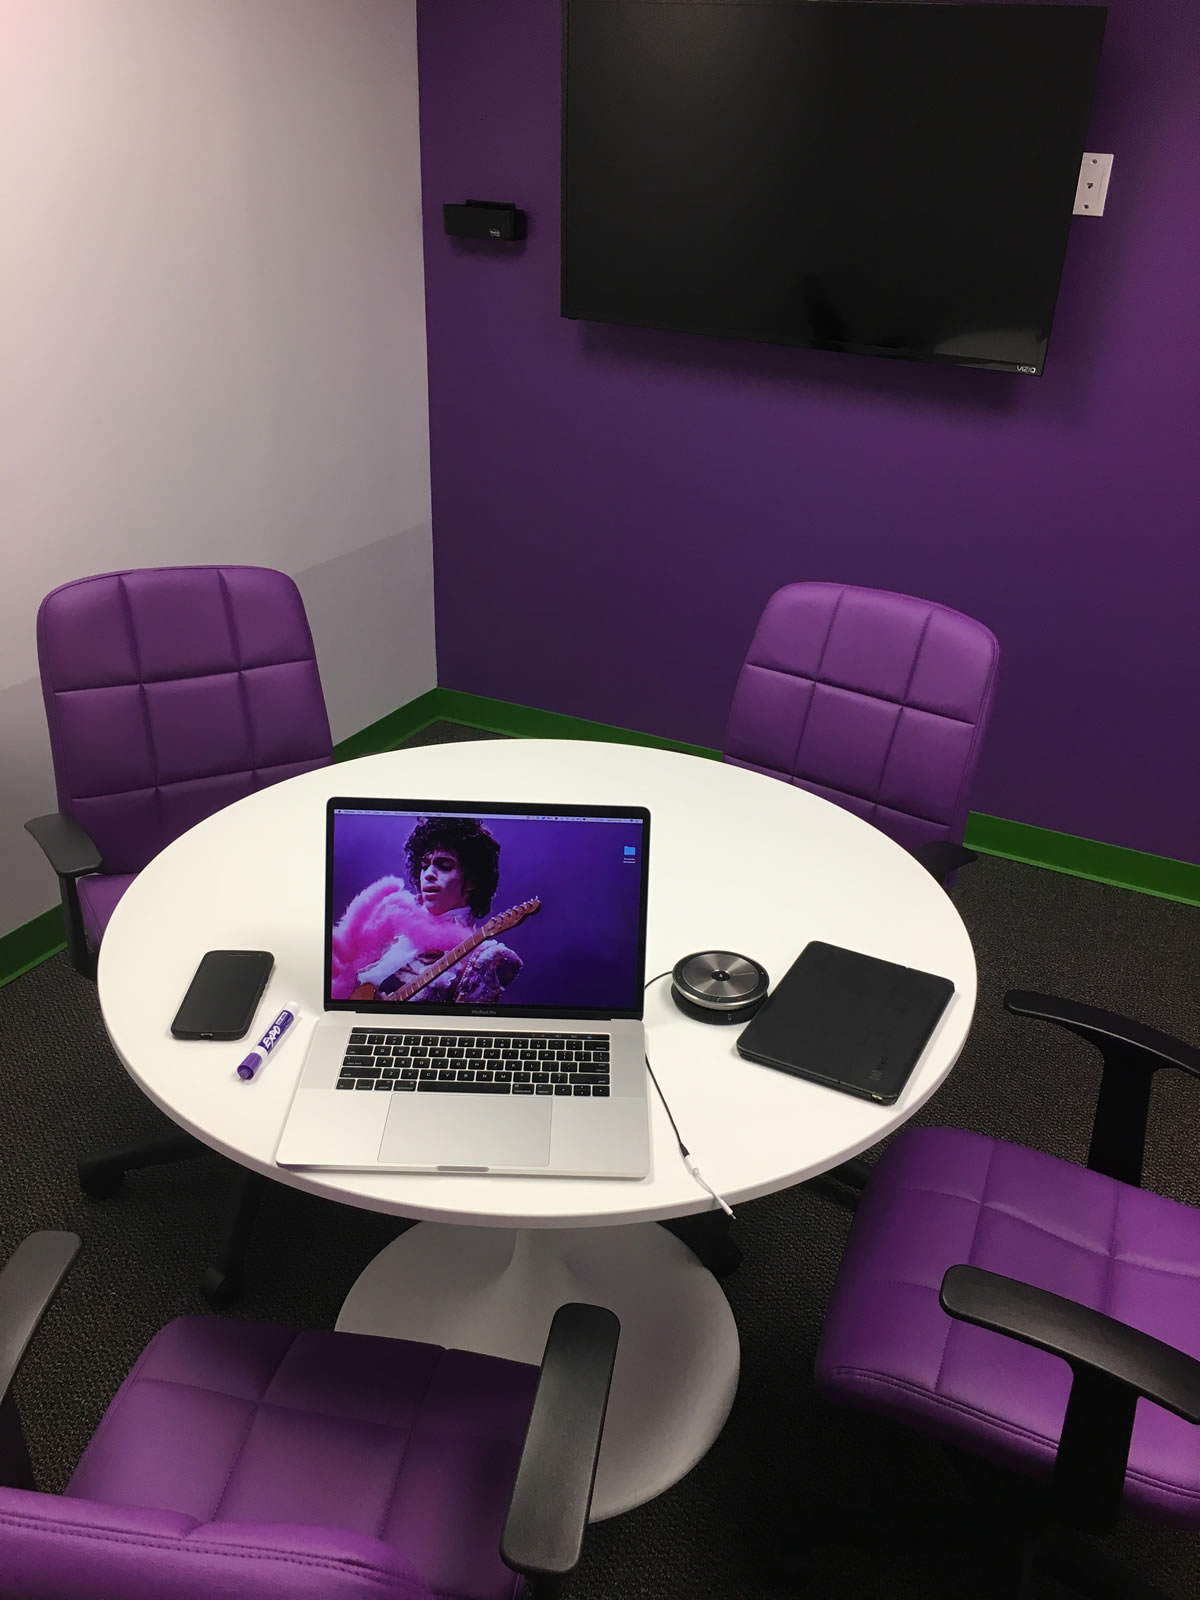 Photo: Sourcetoad's 'Purple Passion Pit' - a small room with a white table, 4 purple chairs, and a purple wall with a monitor. On the table are a purple dry-erase marker and a Macbook Pro with an image of Prince on its monitor.